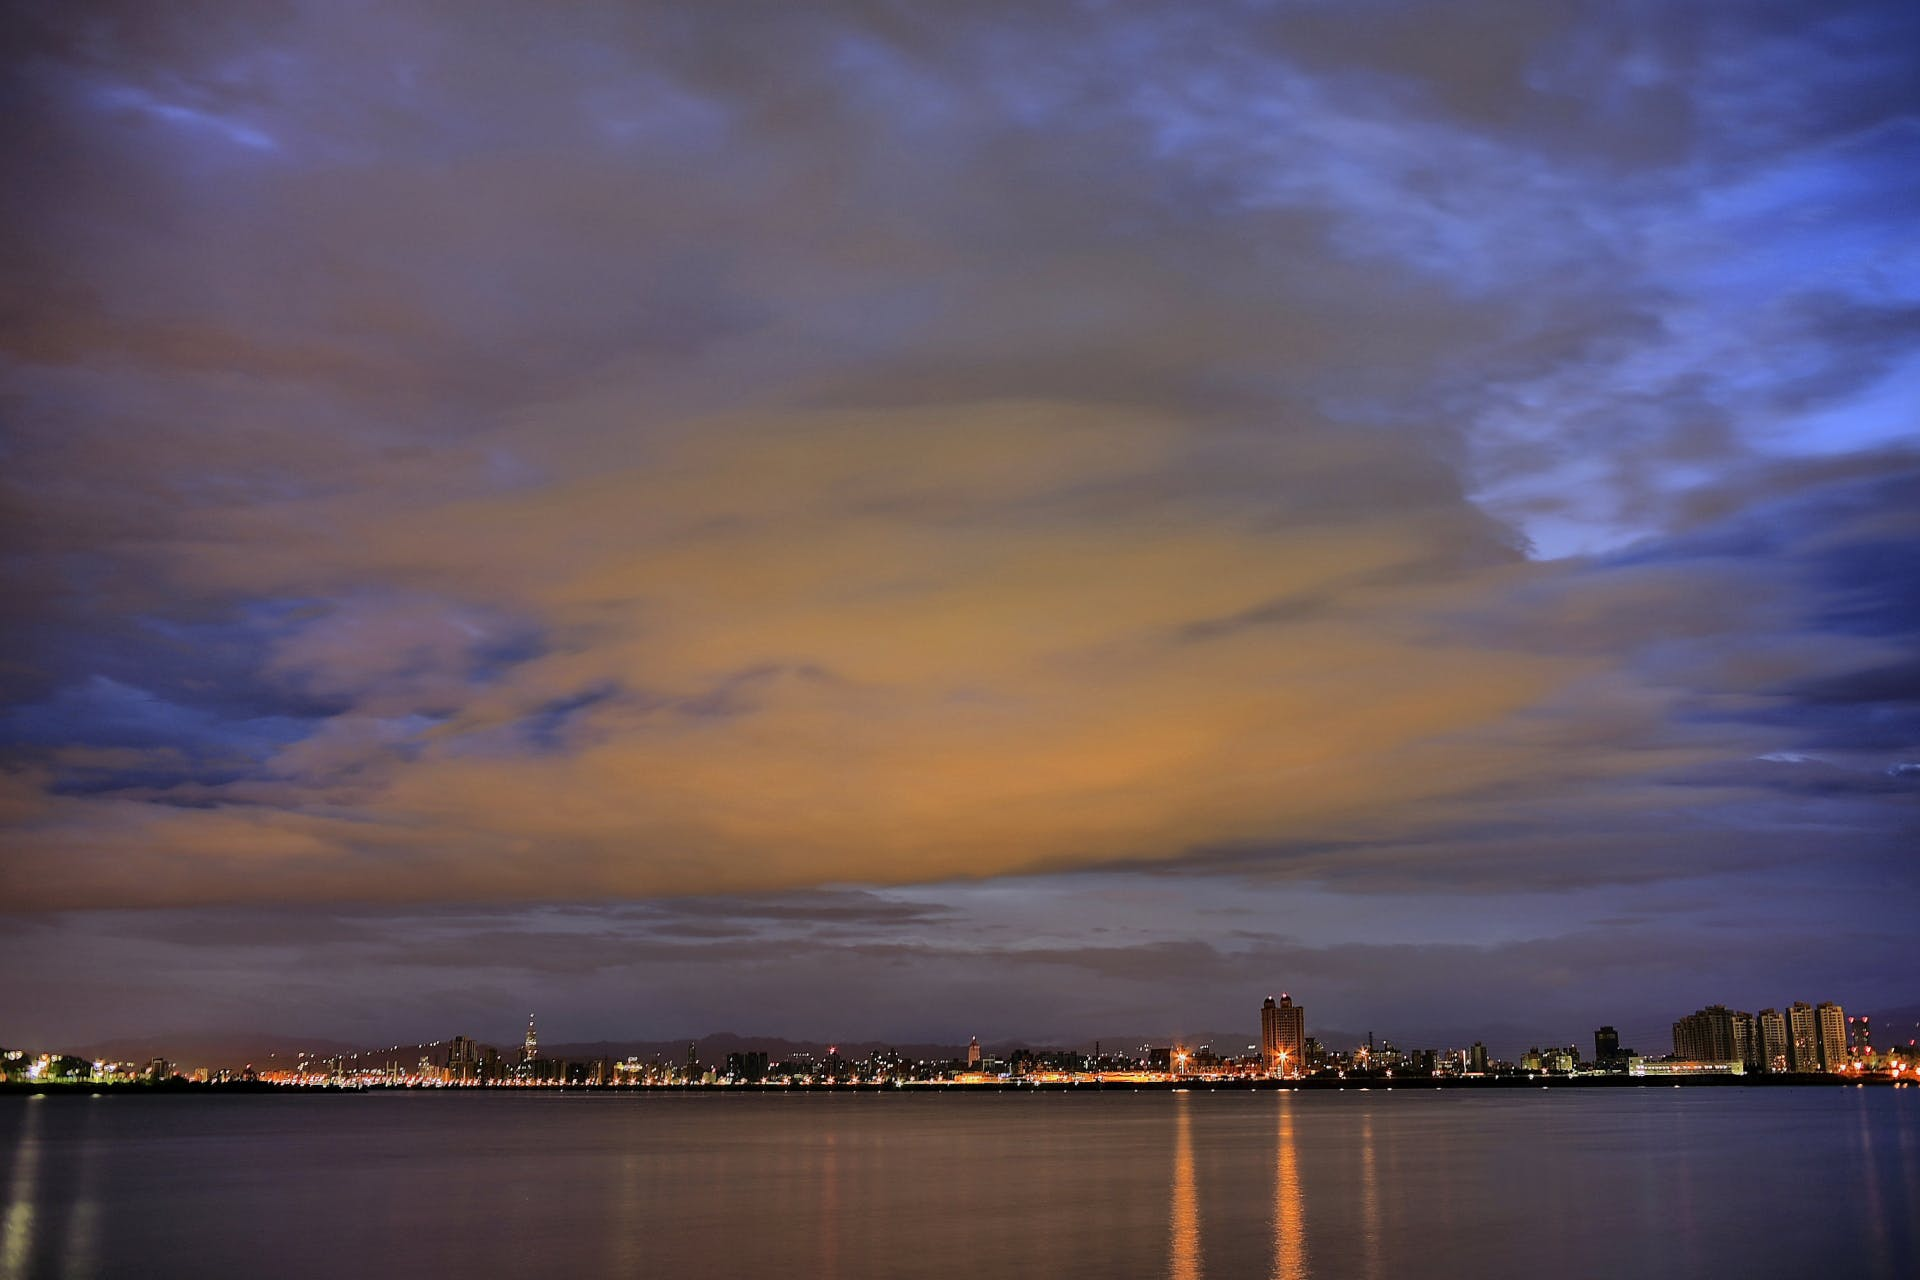 City Light Reflecting on Calm Waters Night Time